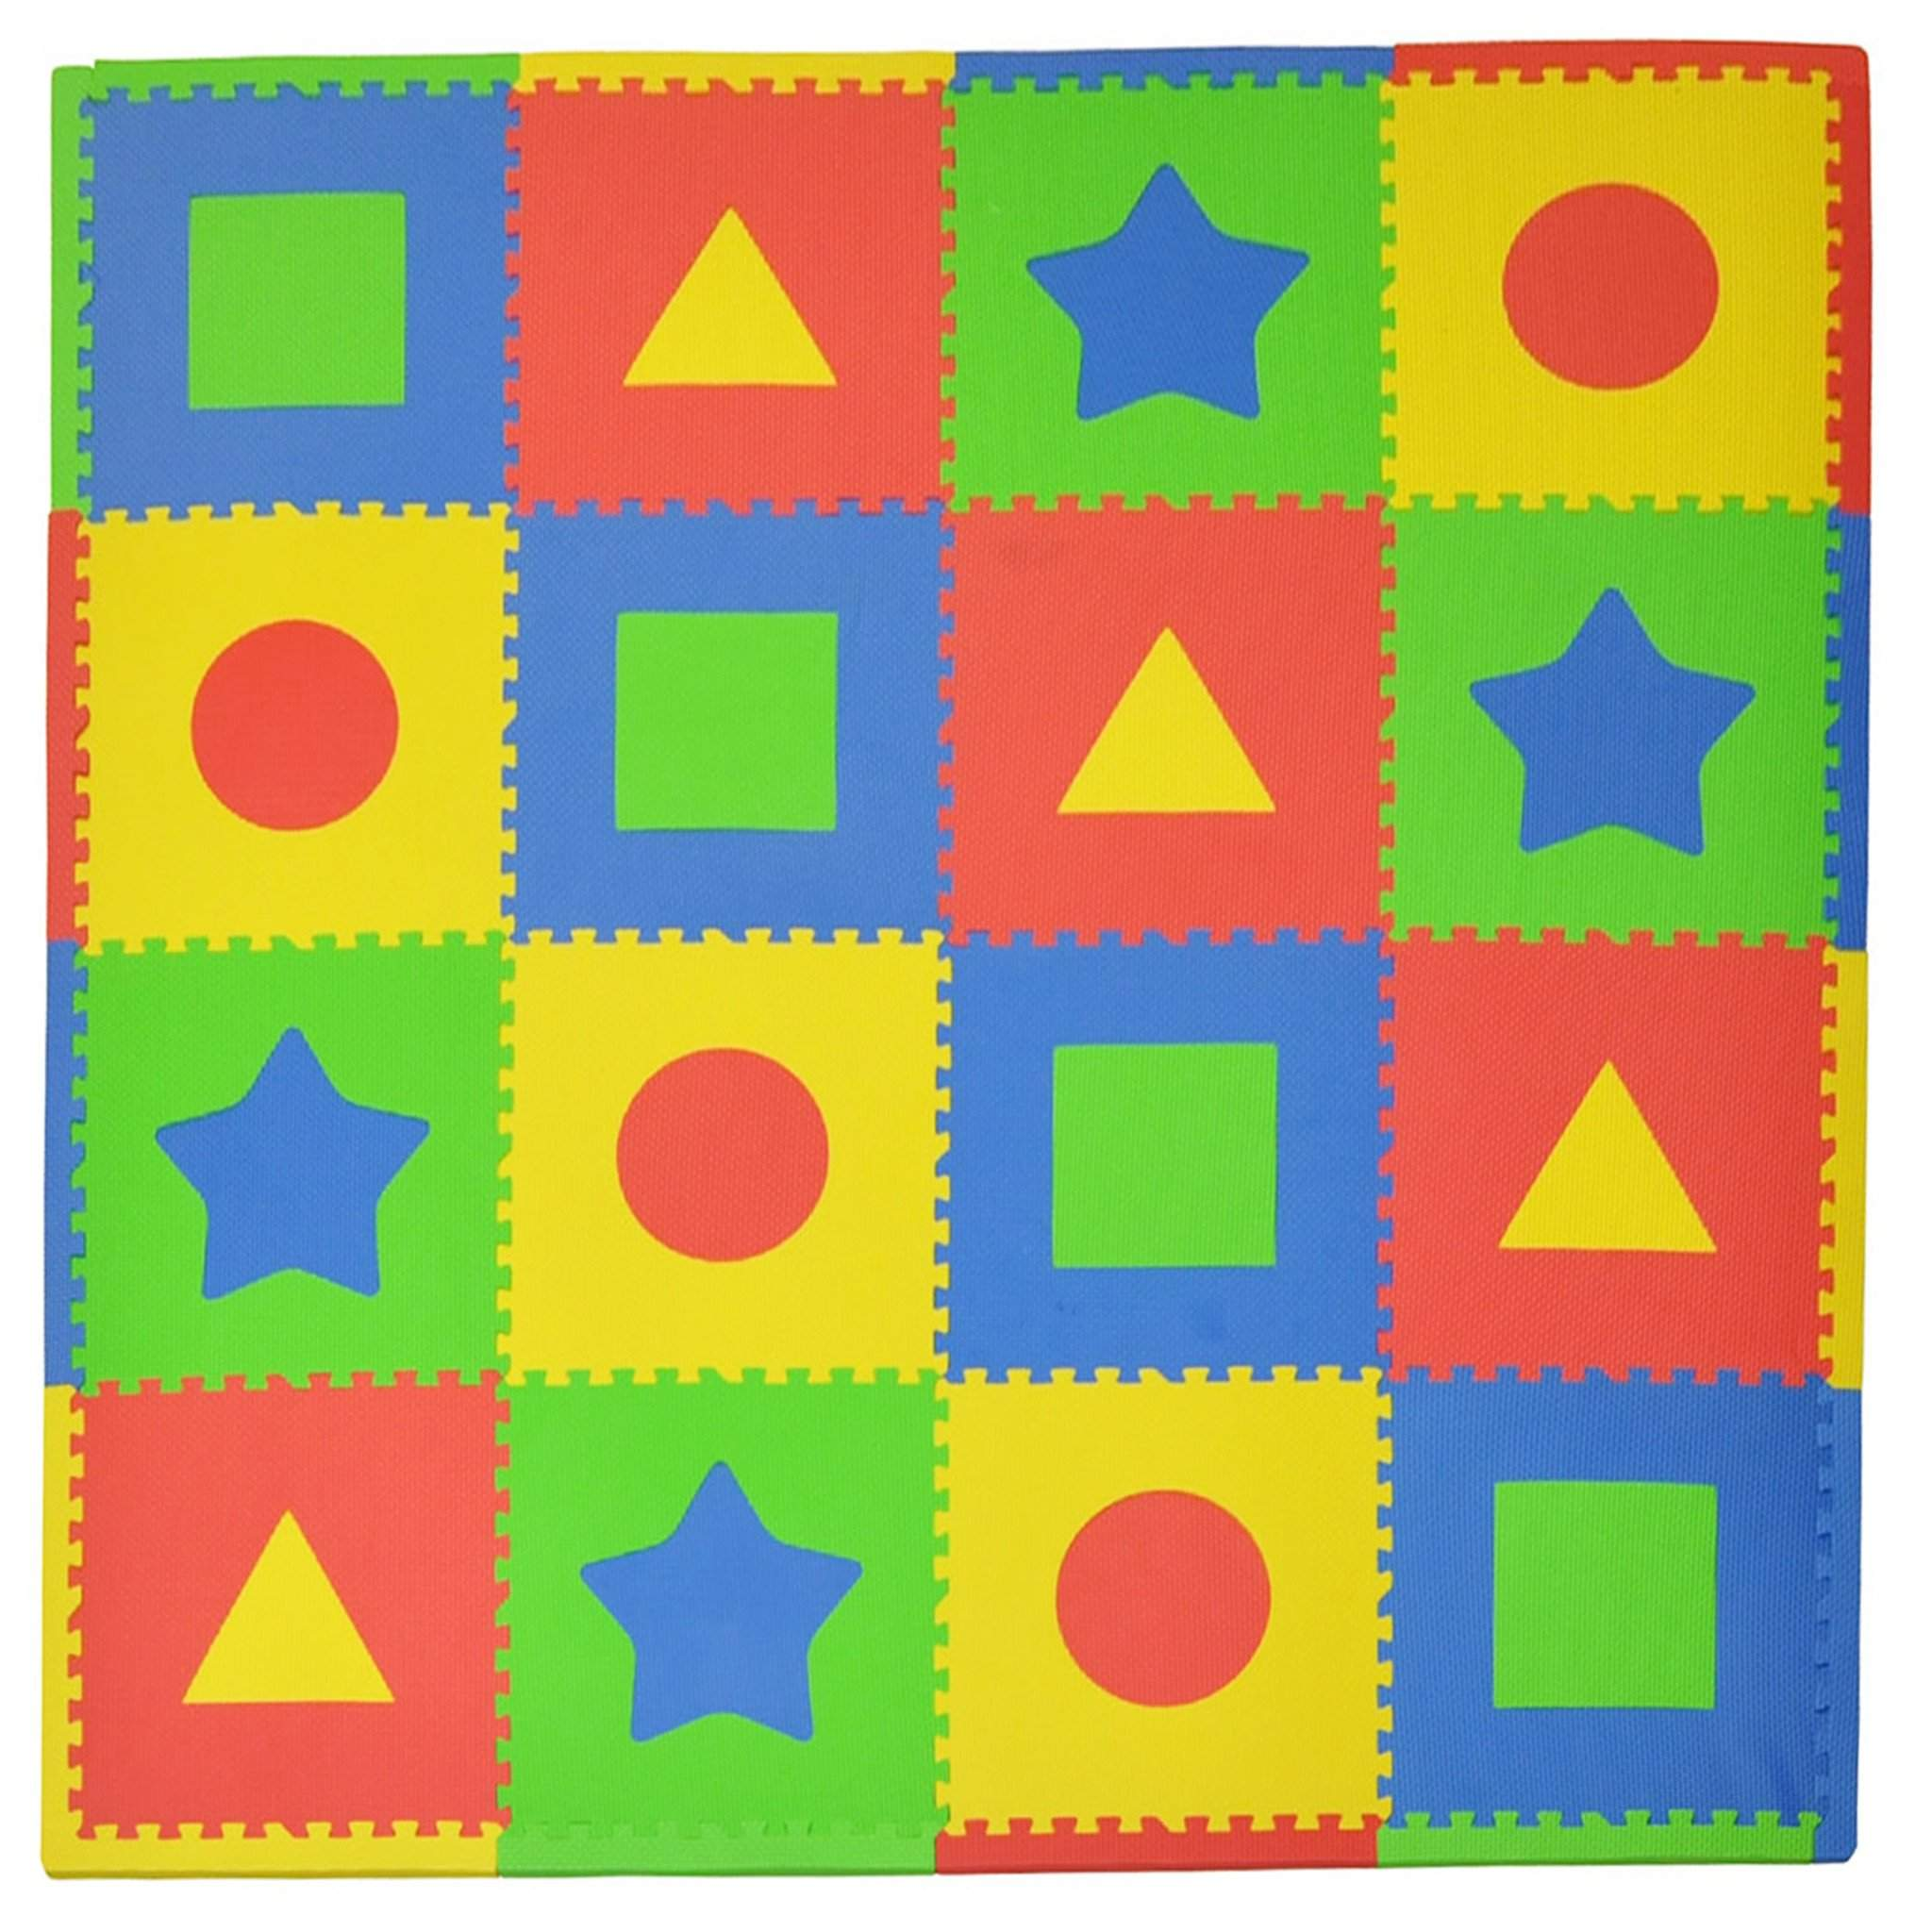 16 Piece Foam Playmat Set, First Shapes